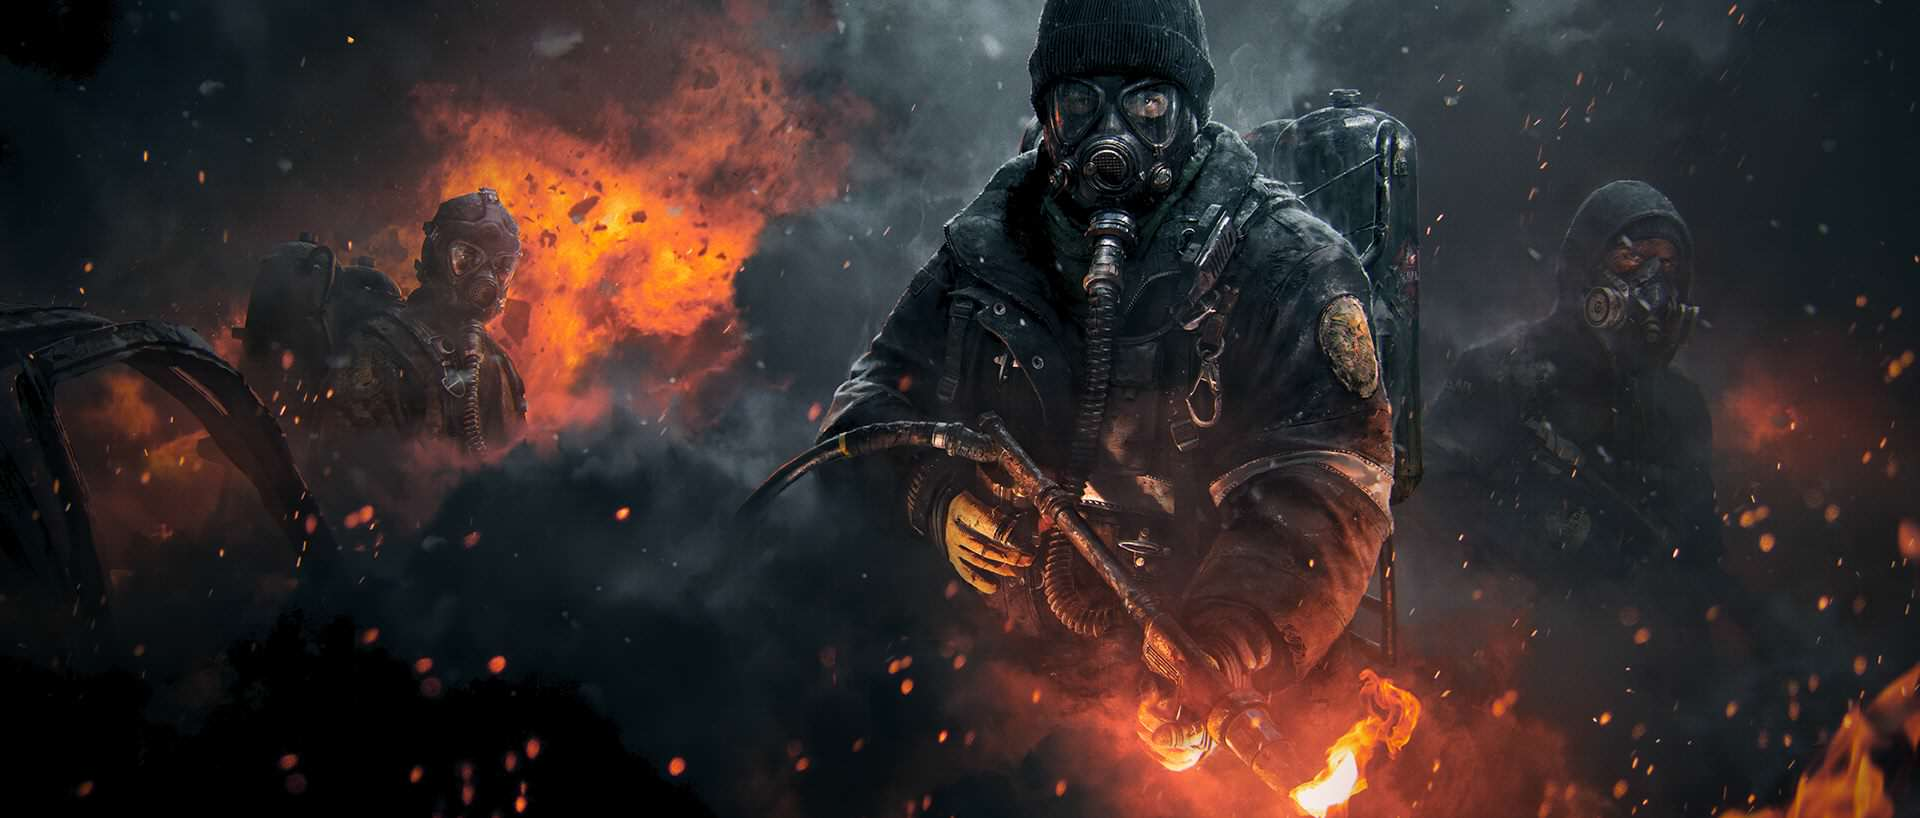 The Division Datamined To Reveal All Kinds Of New Info the division the cleaners artwork